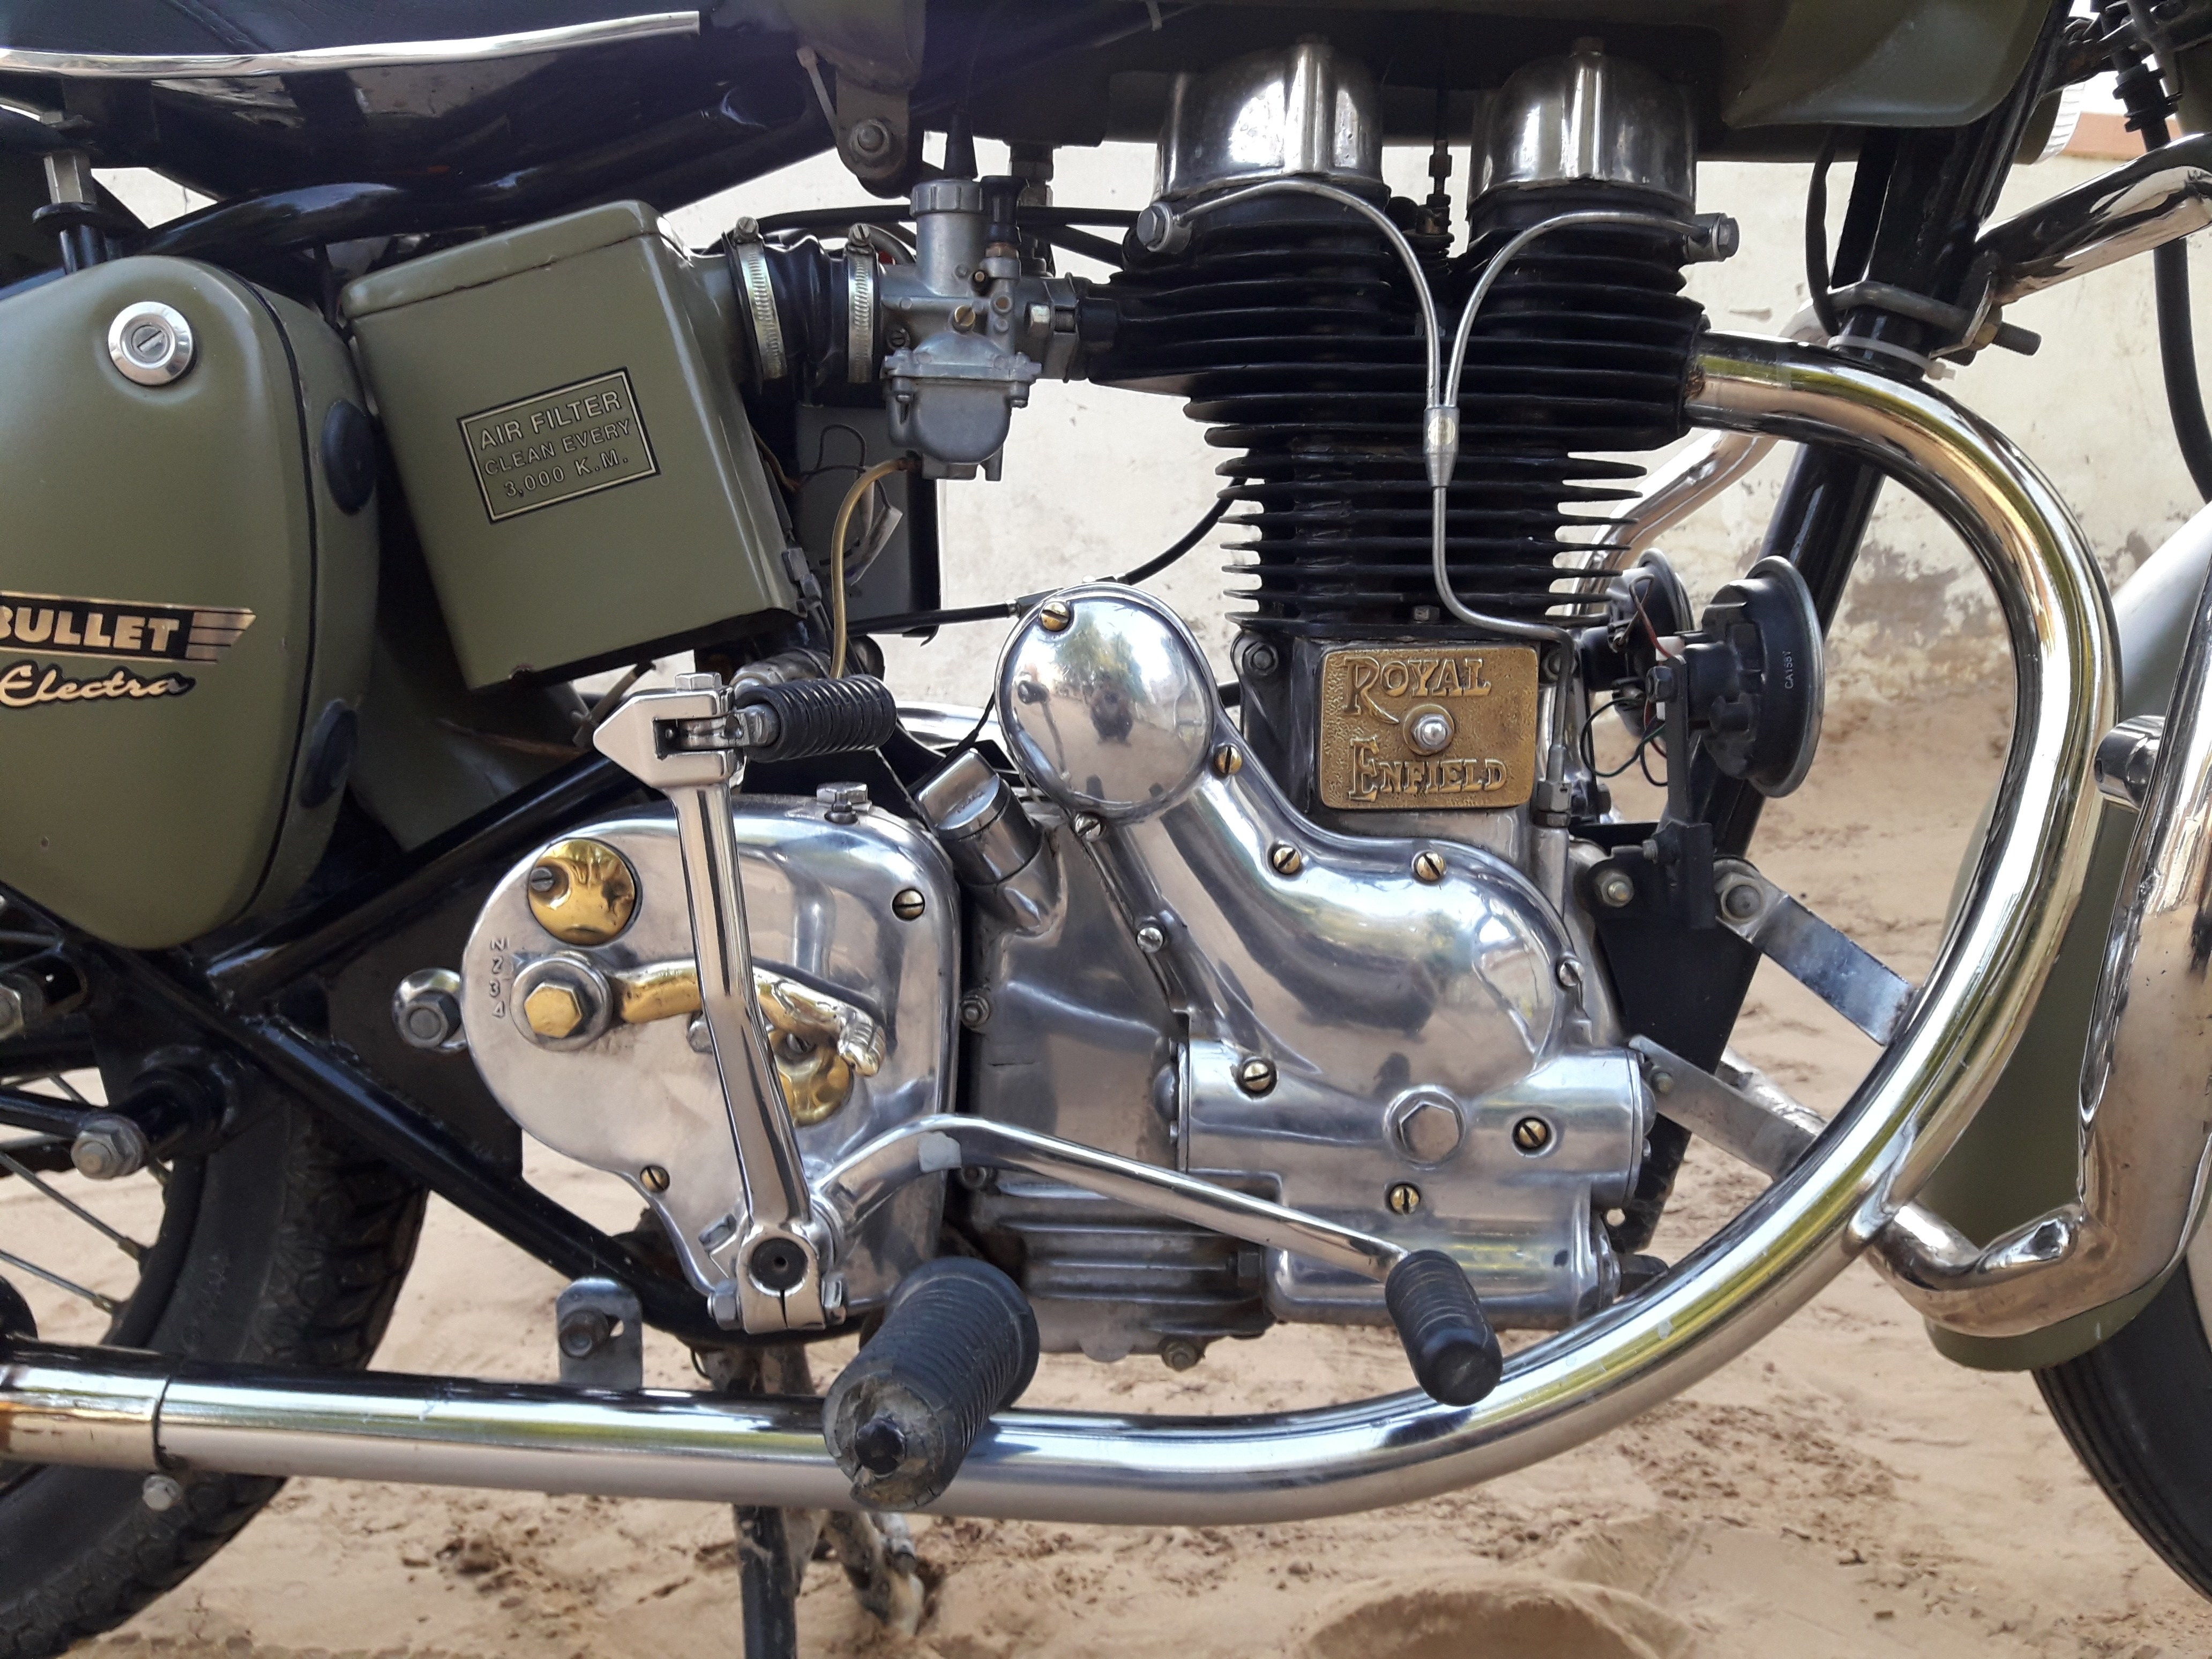 How much does an engine buffing cost for Royal Enfield? - Quora